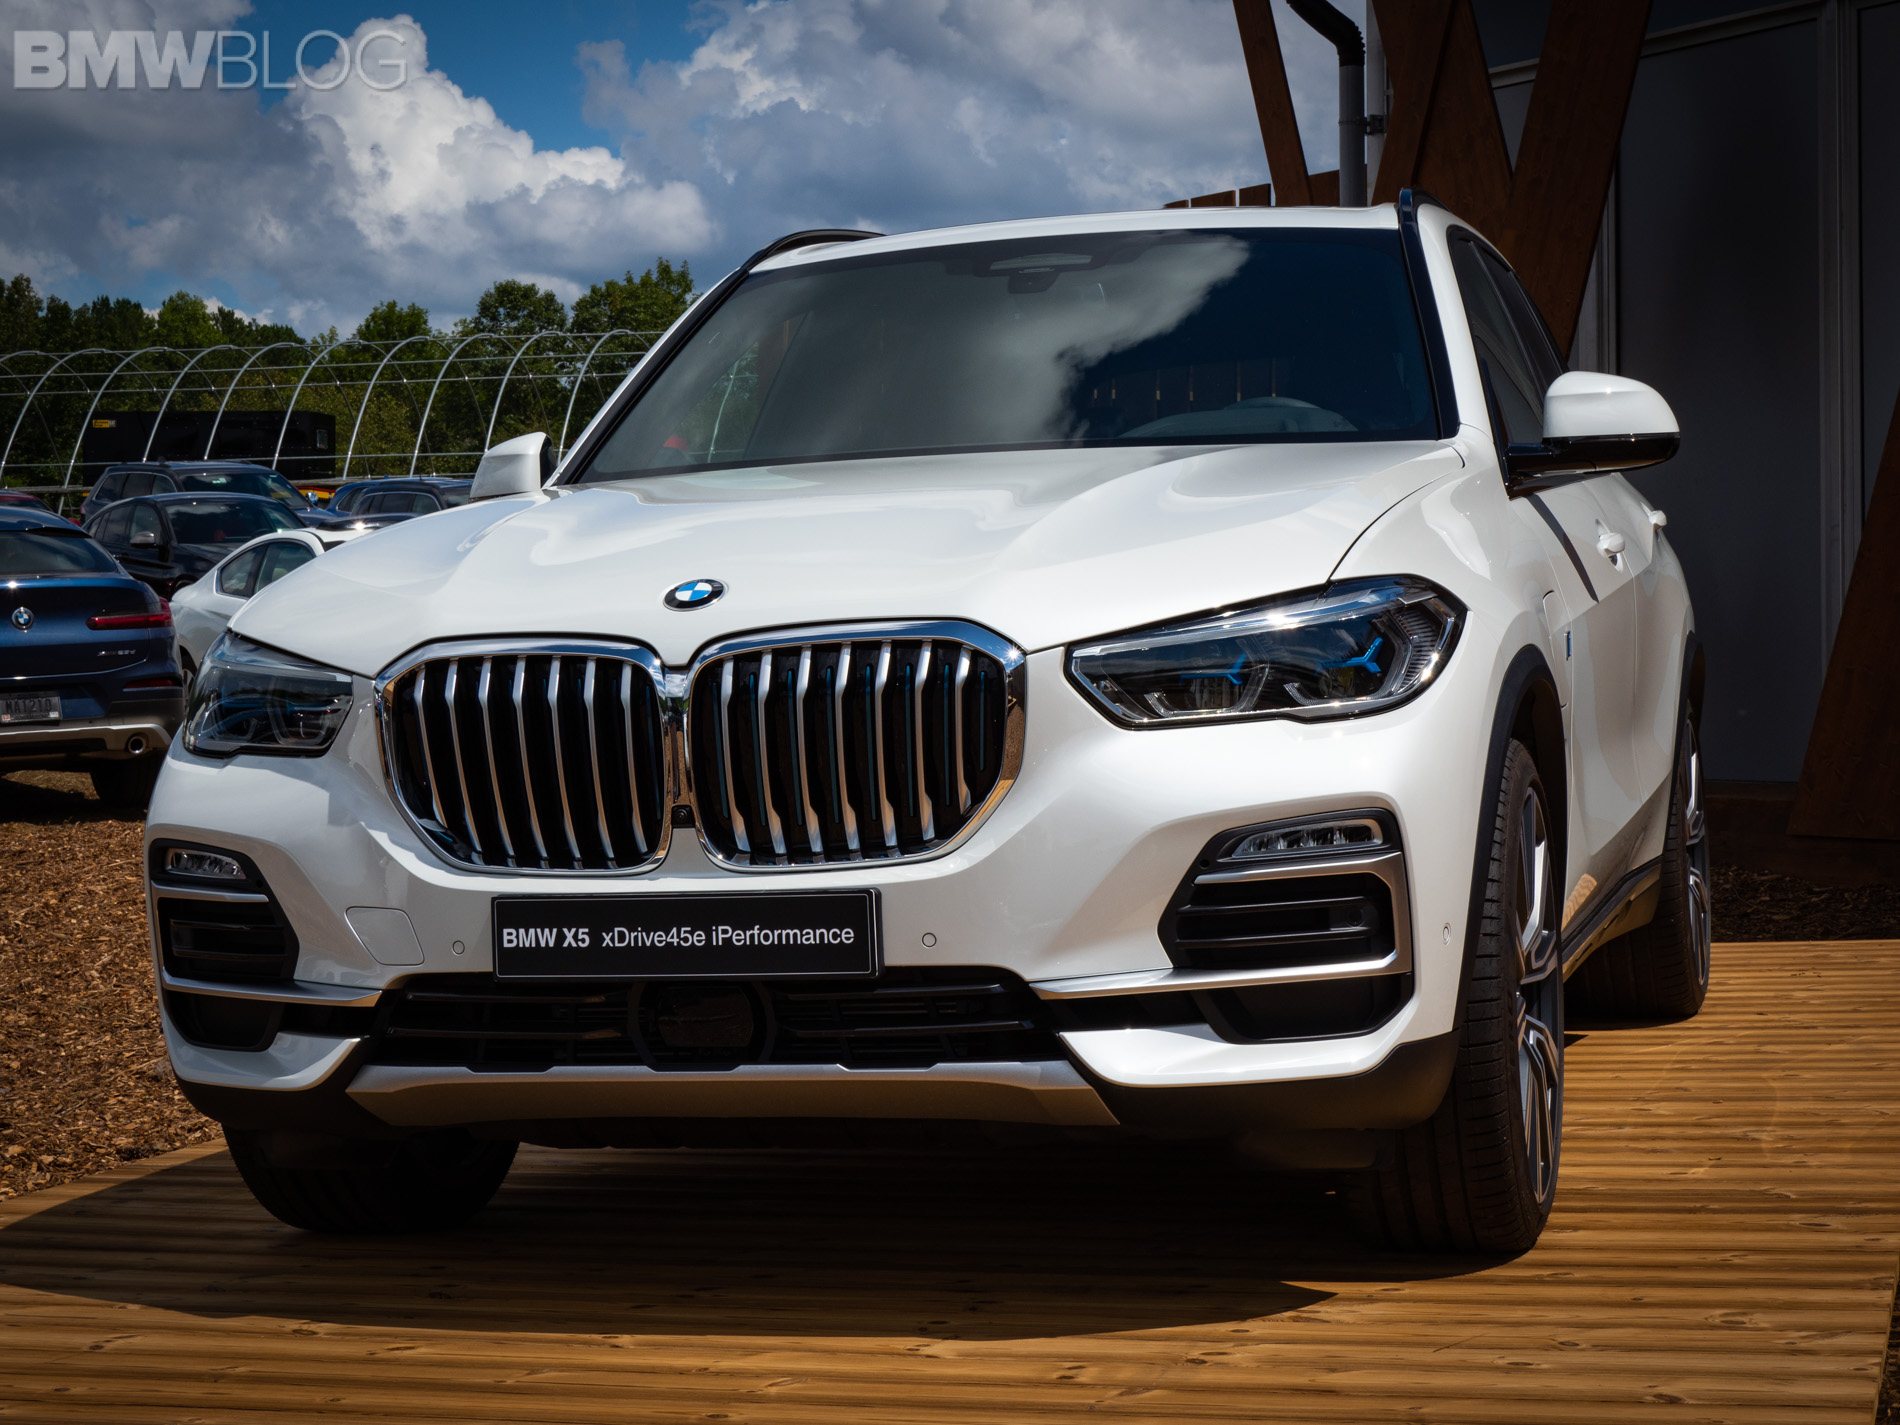 BMW X5 xDrive45e live photos 1